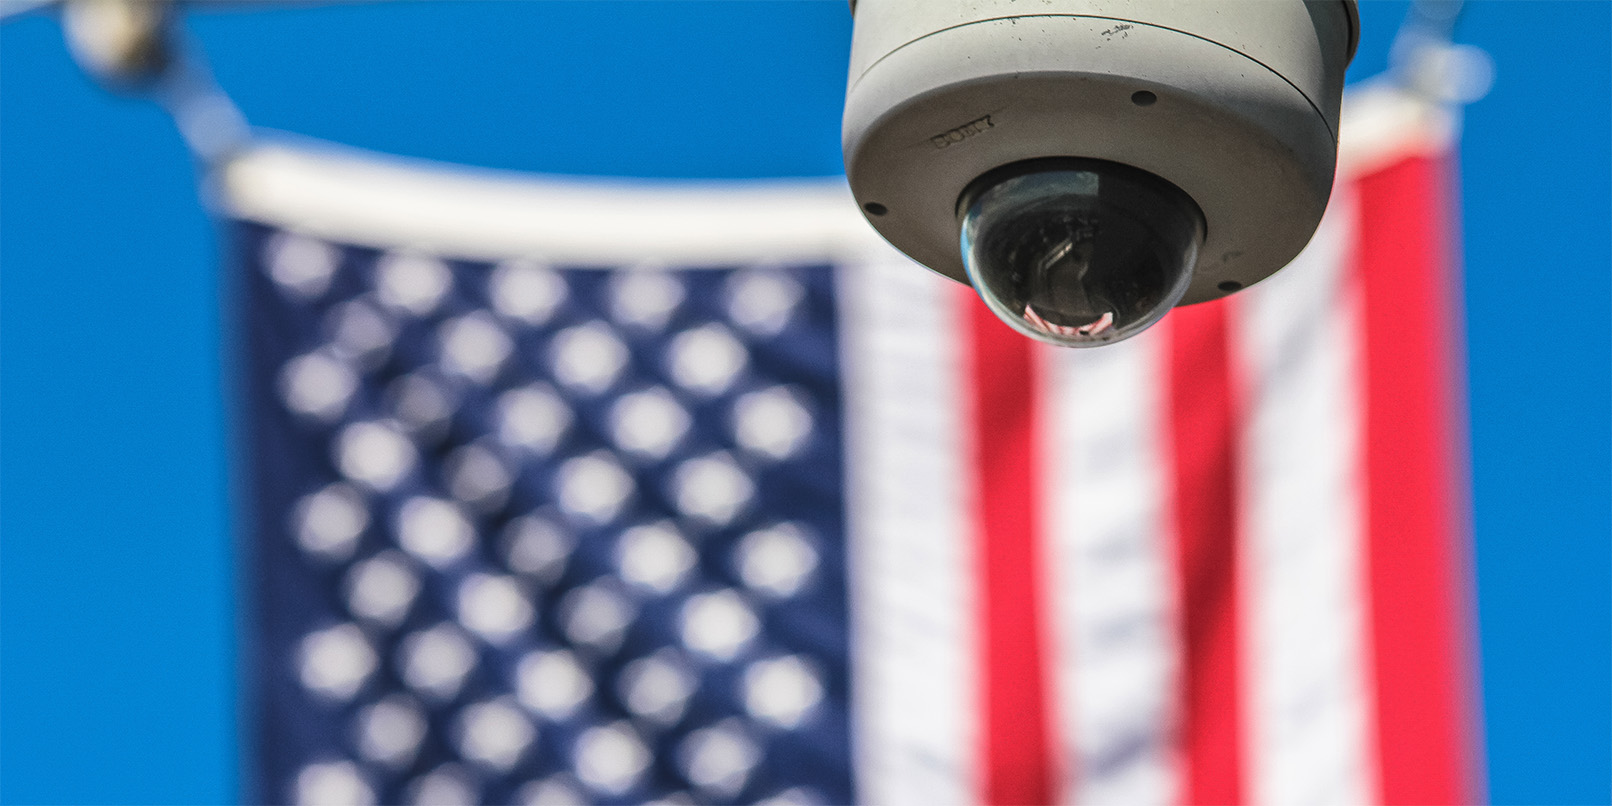 Congress could soon allow ISPs to sell your browsing history without your consent